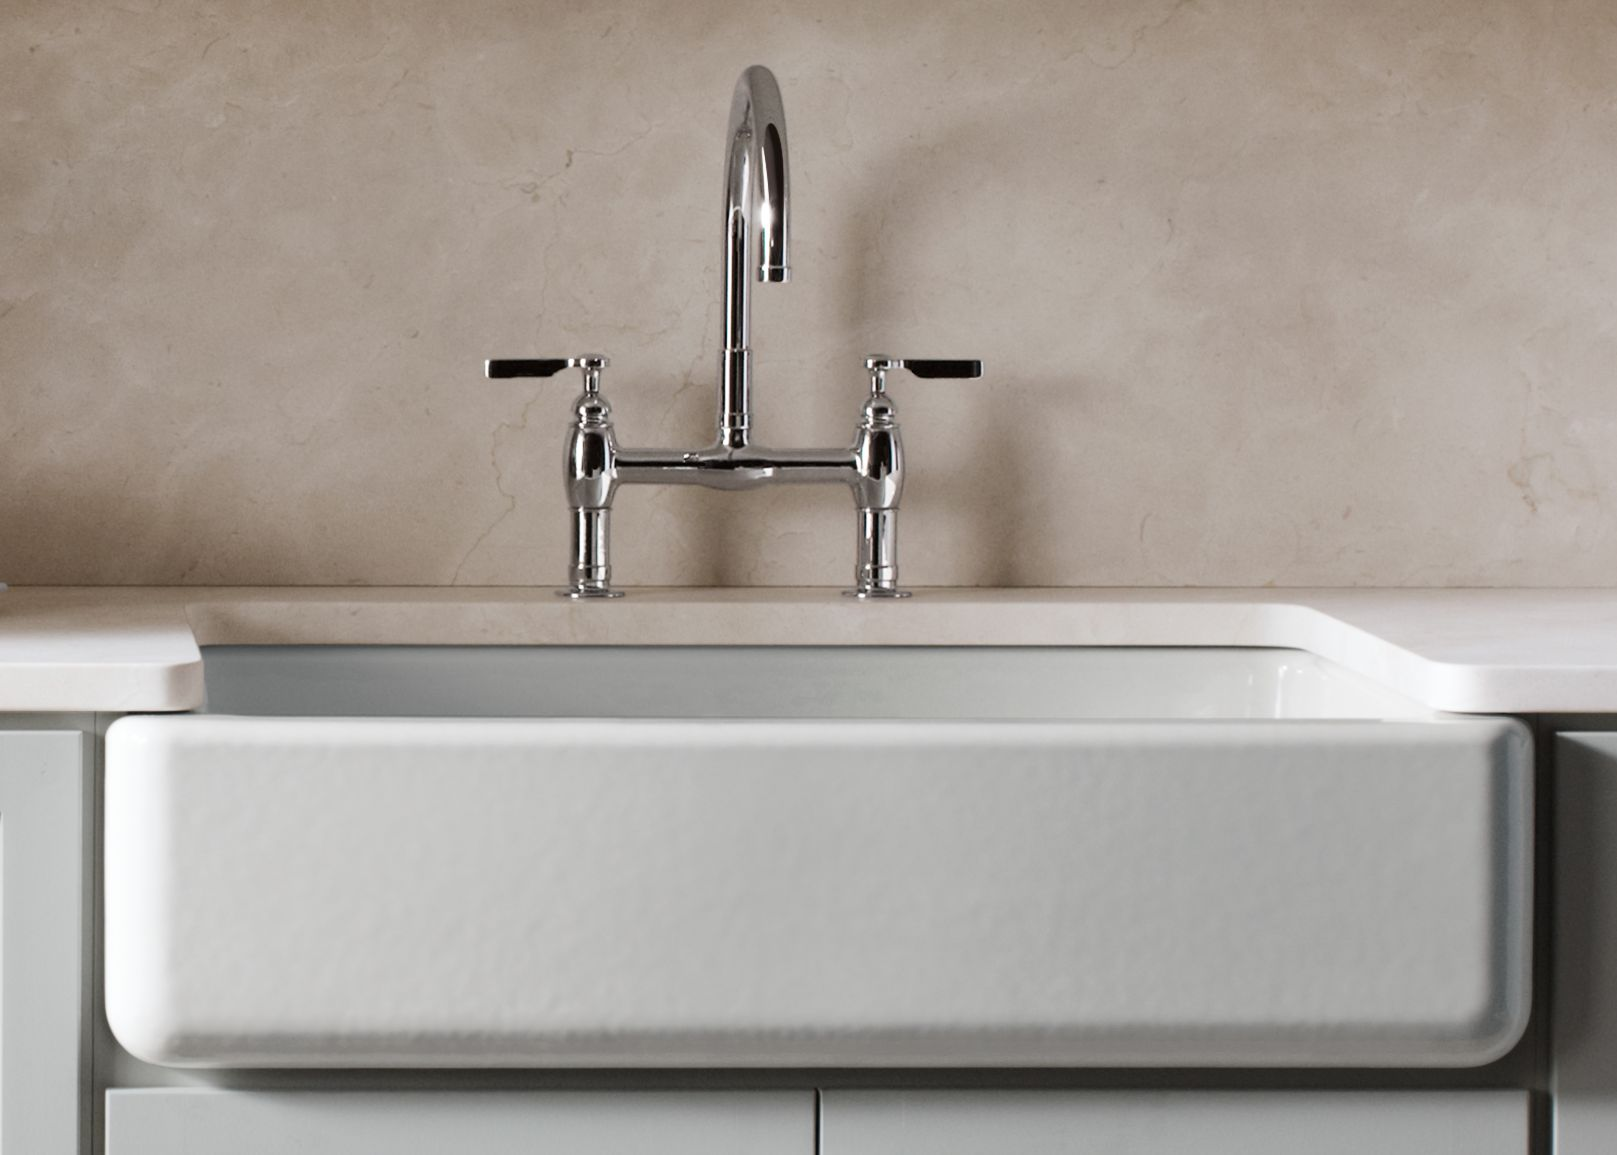 kitchen sink materials guide | buyer's guide | kohler